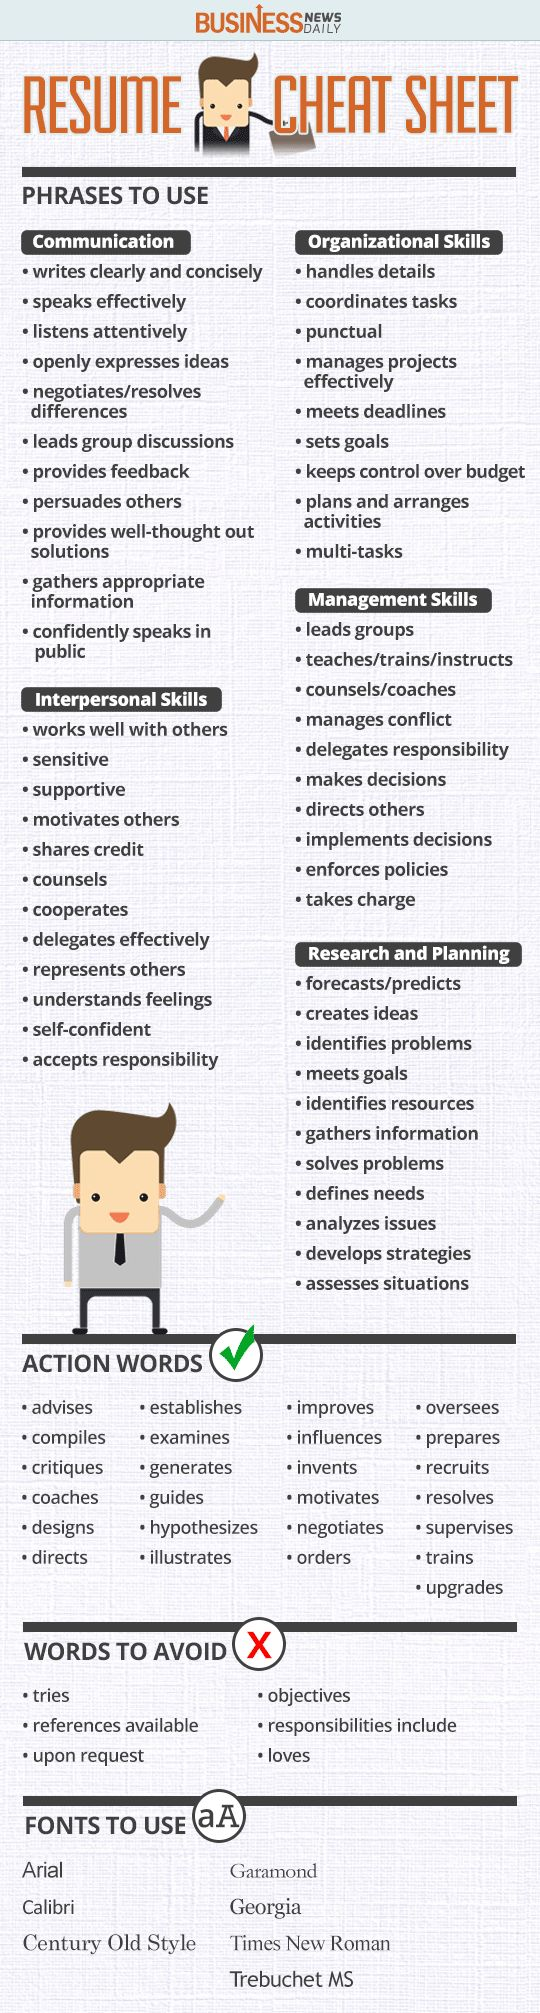 Picnictoimpeachus  Prepossessing  Ideas About Resume On Pinterest  Cv Format Resume Cv And  With Fascinating Resume Cheat Sheet Infographic Andrews Almost Done With A Complete Unit On Employment Which With Charming Example Of A Resume Also College Resume Template In Addition How To Write A Good Resume And Resume Skills List As Well As Resume Cover Letter Sample Additionally Marketing Resume From Pinterestcom With Picnictoimpeachus  Fascinating  Ideas About Resume On Pinterest  Cv Format Resume Cv And  With Charming Resume Cheat Sheet Infographic Andrews Almost Done With A Complete Unit On Employment Which And Prepossessing Example Of A Resume Also College Resume Template In Addition How To Write A Good Resume From Pinterestcom